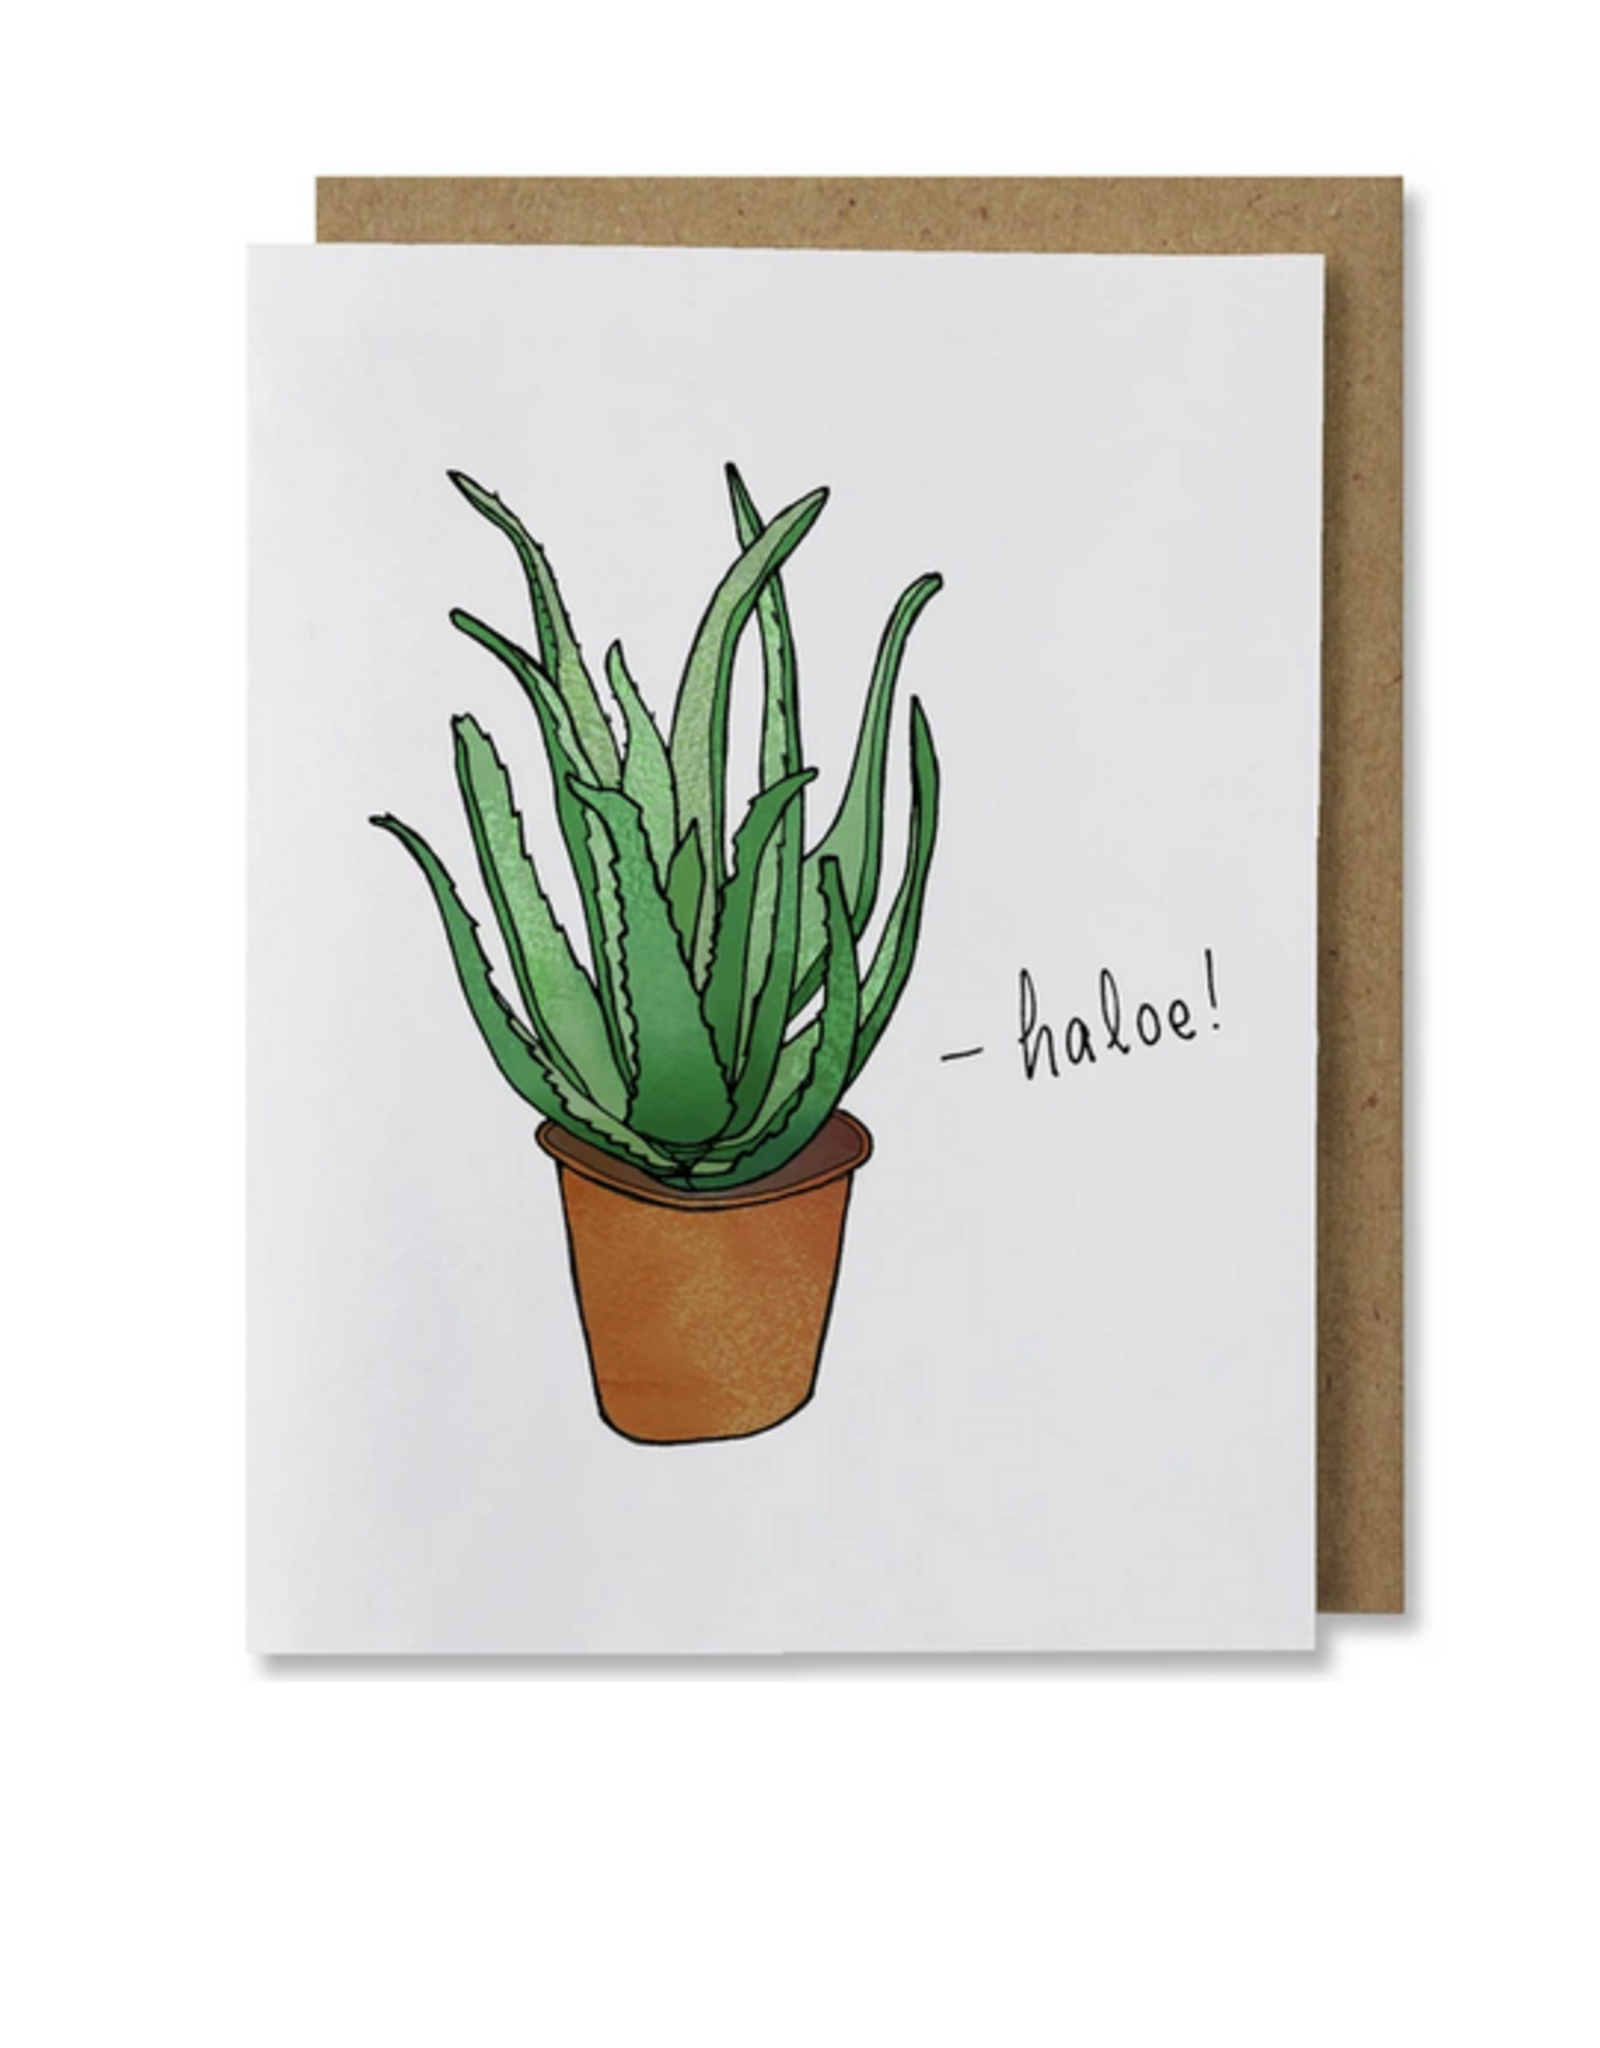 Haloe! Greeting Card